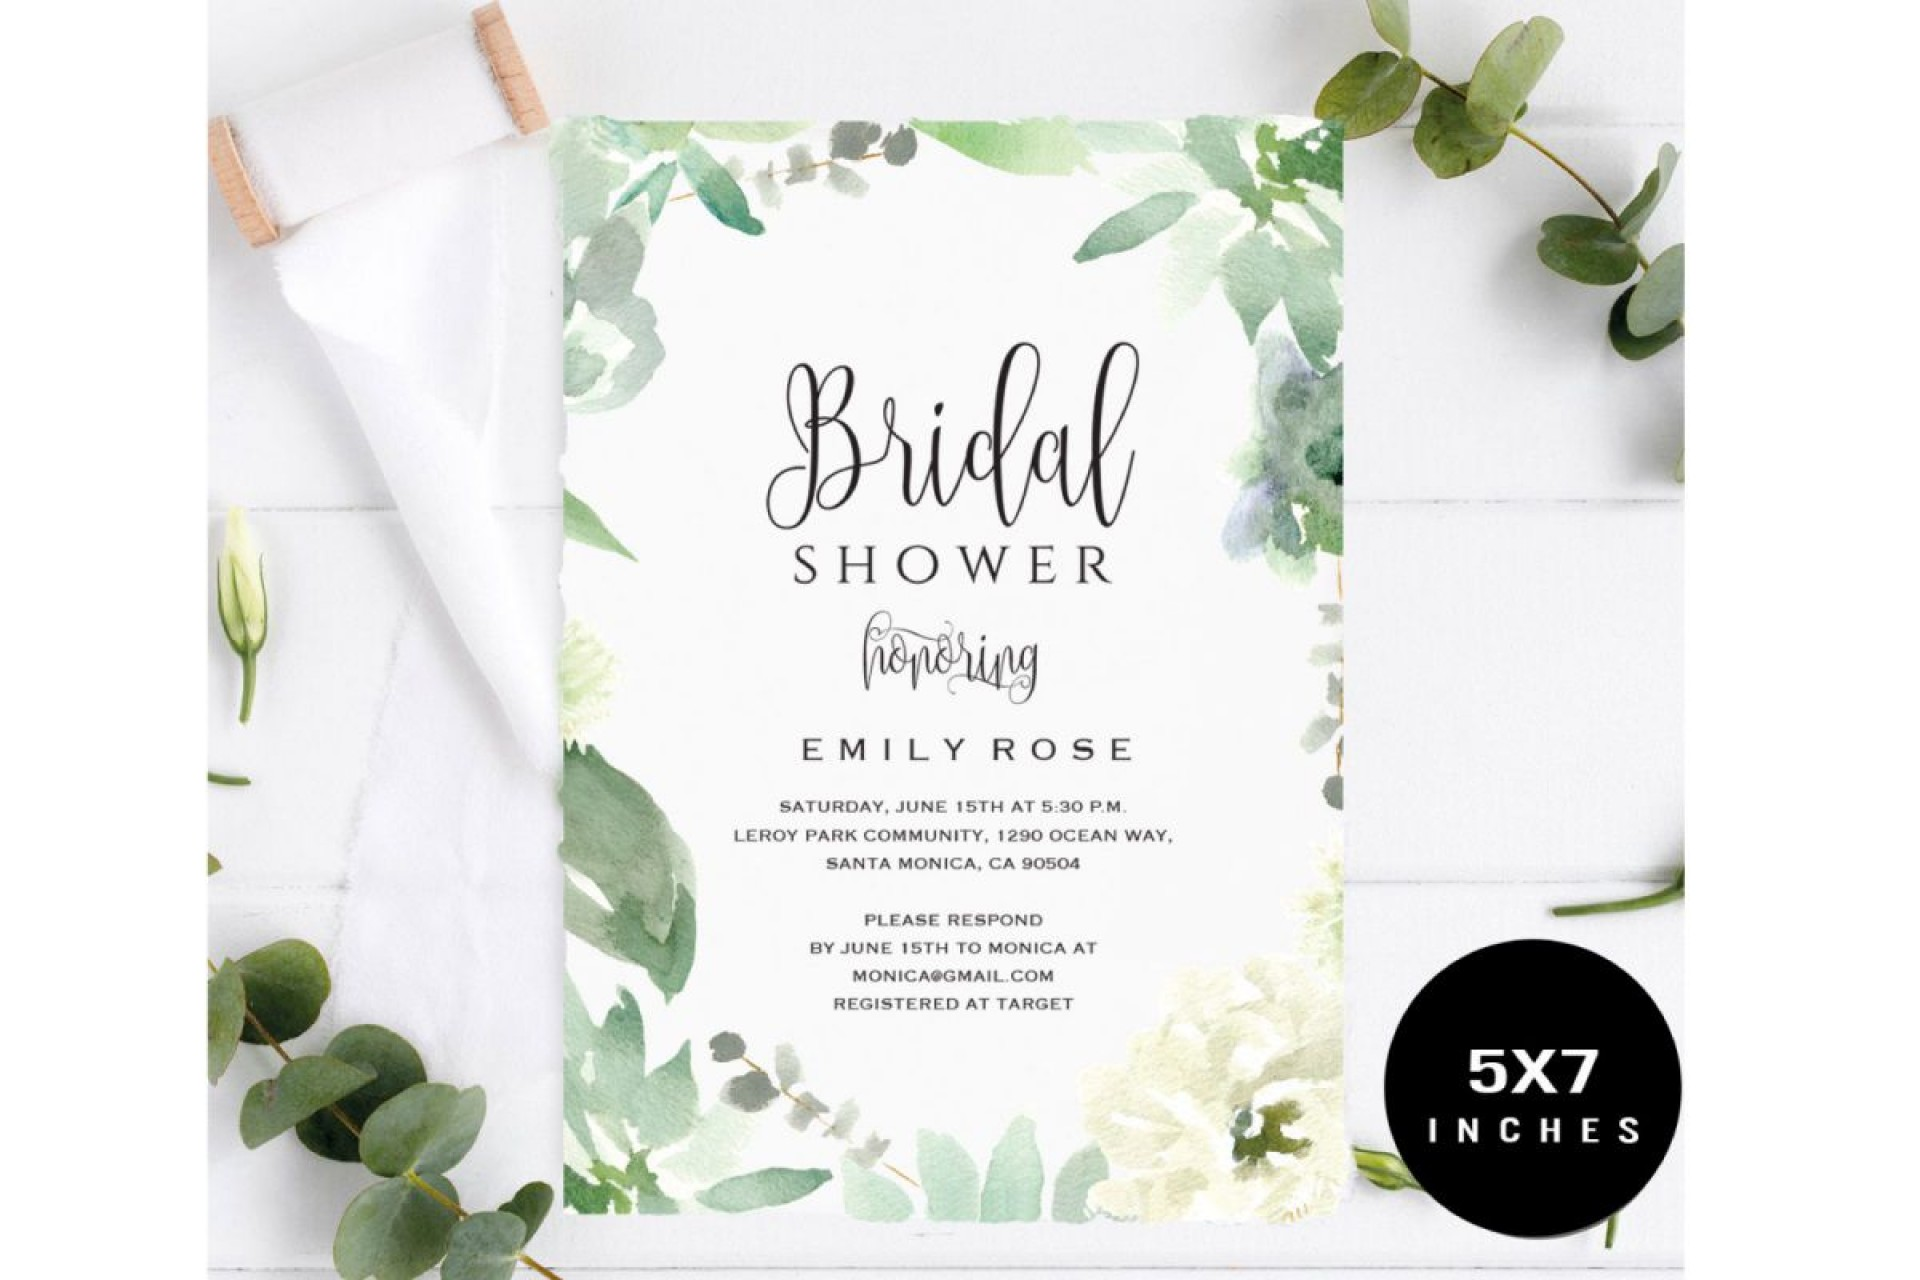 005 Fearsome Wedding Shower Invitation Template Design  Templates Bridal Pinterest Microsoft Word Free For1920